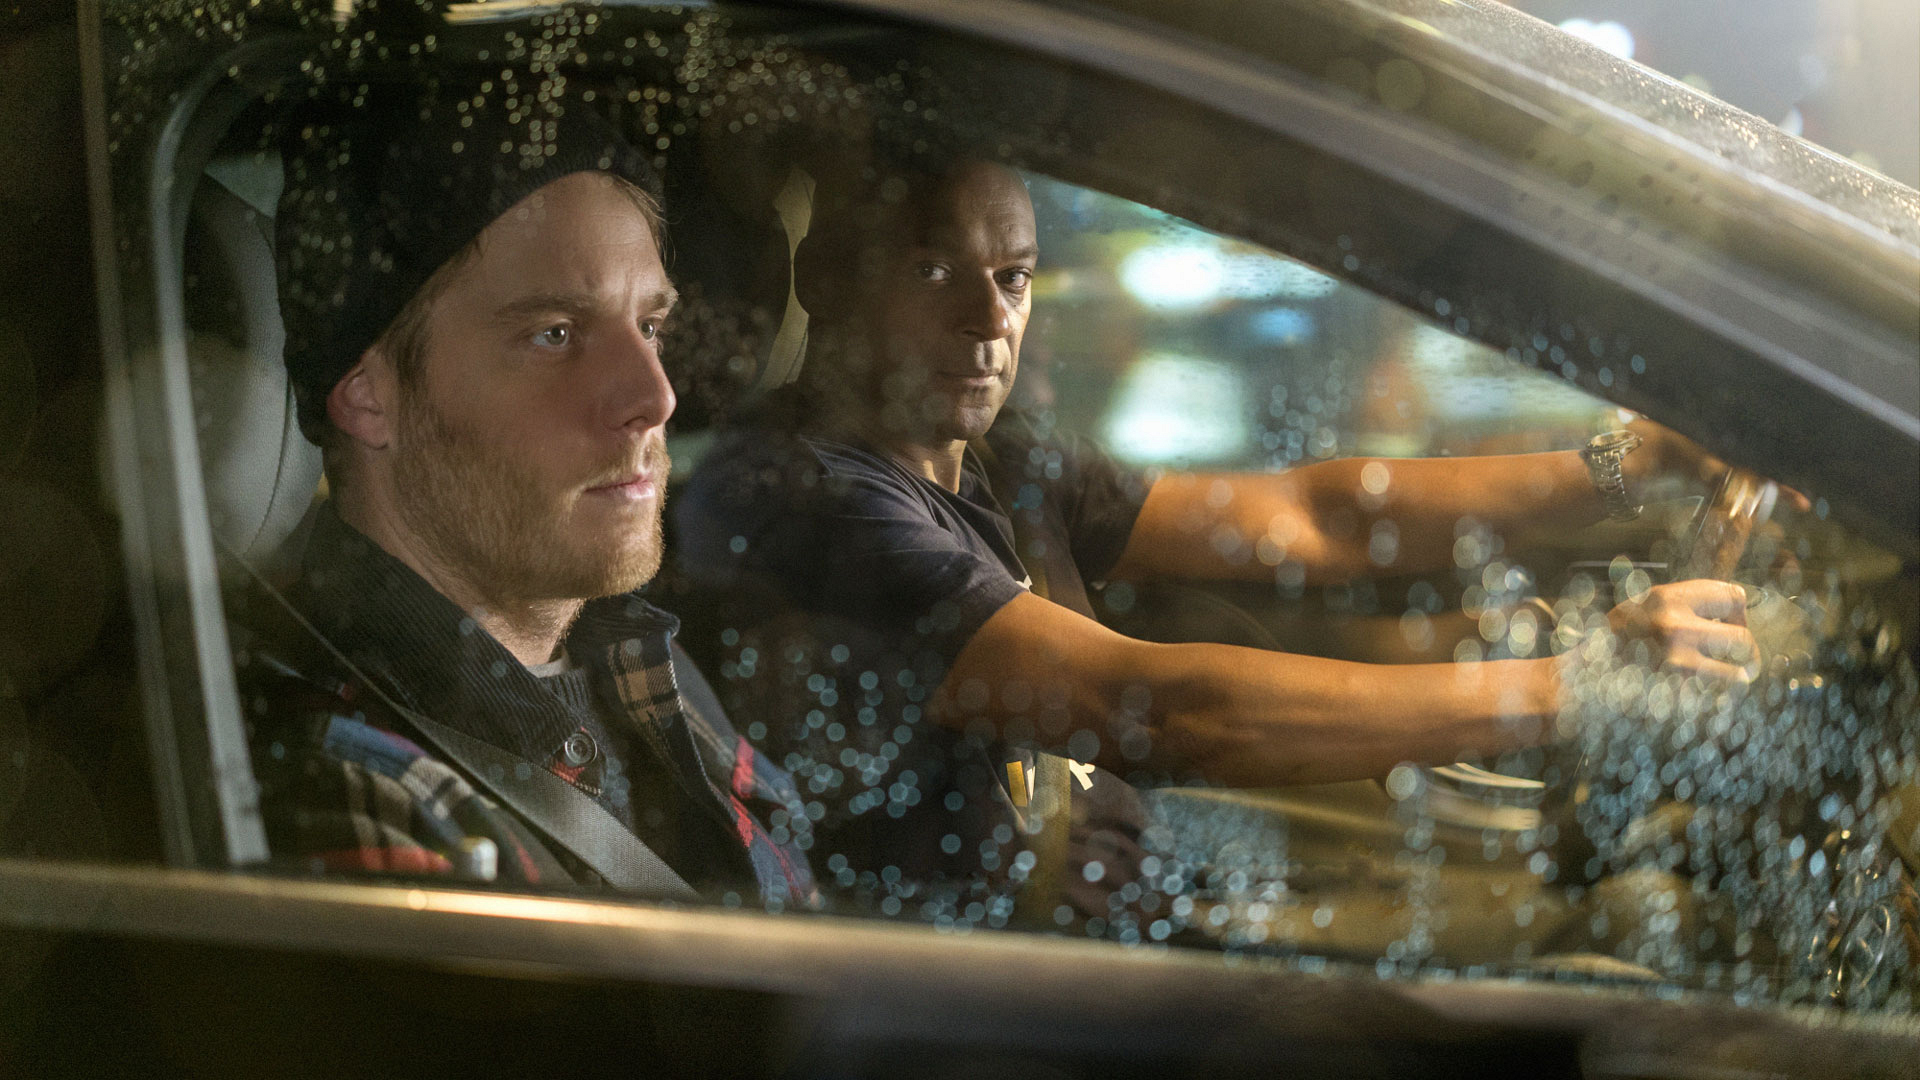 Jake McDorman as Brian Finch and Colin Salmon as Sands